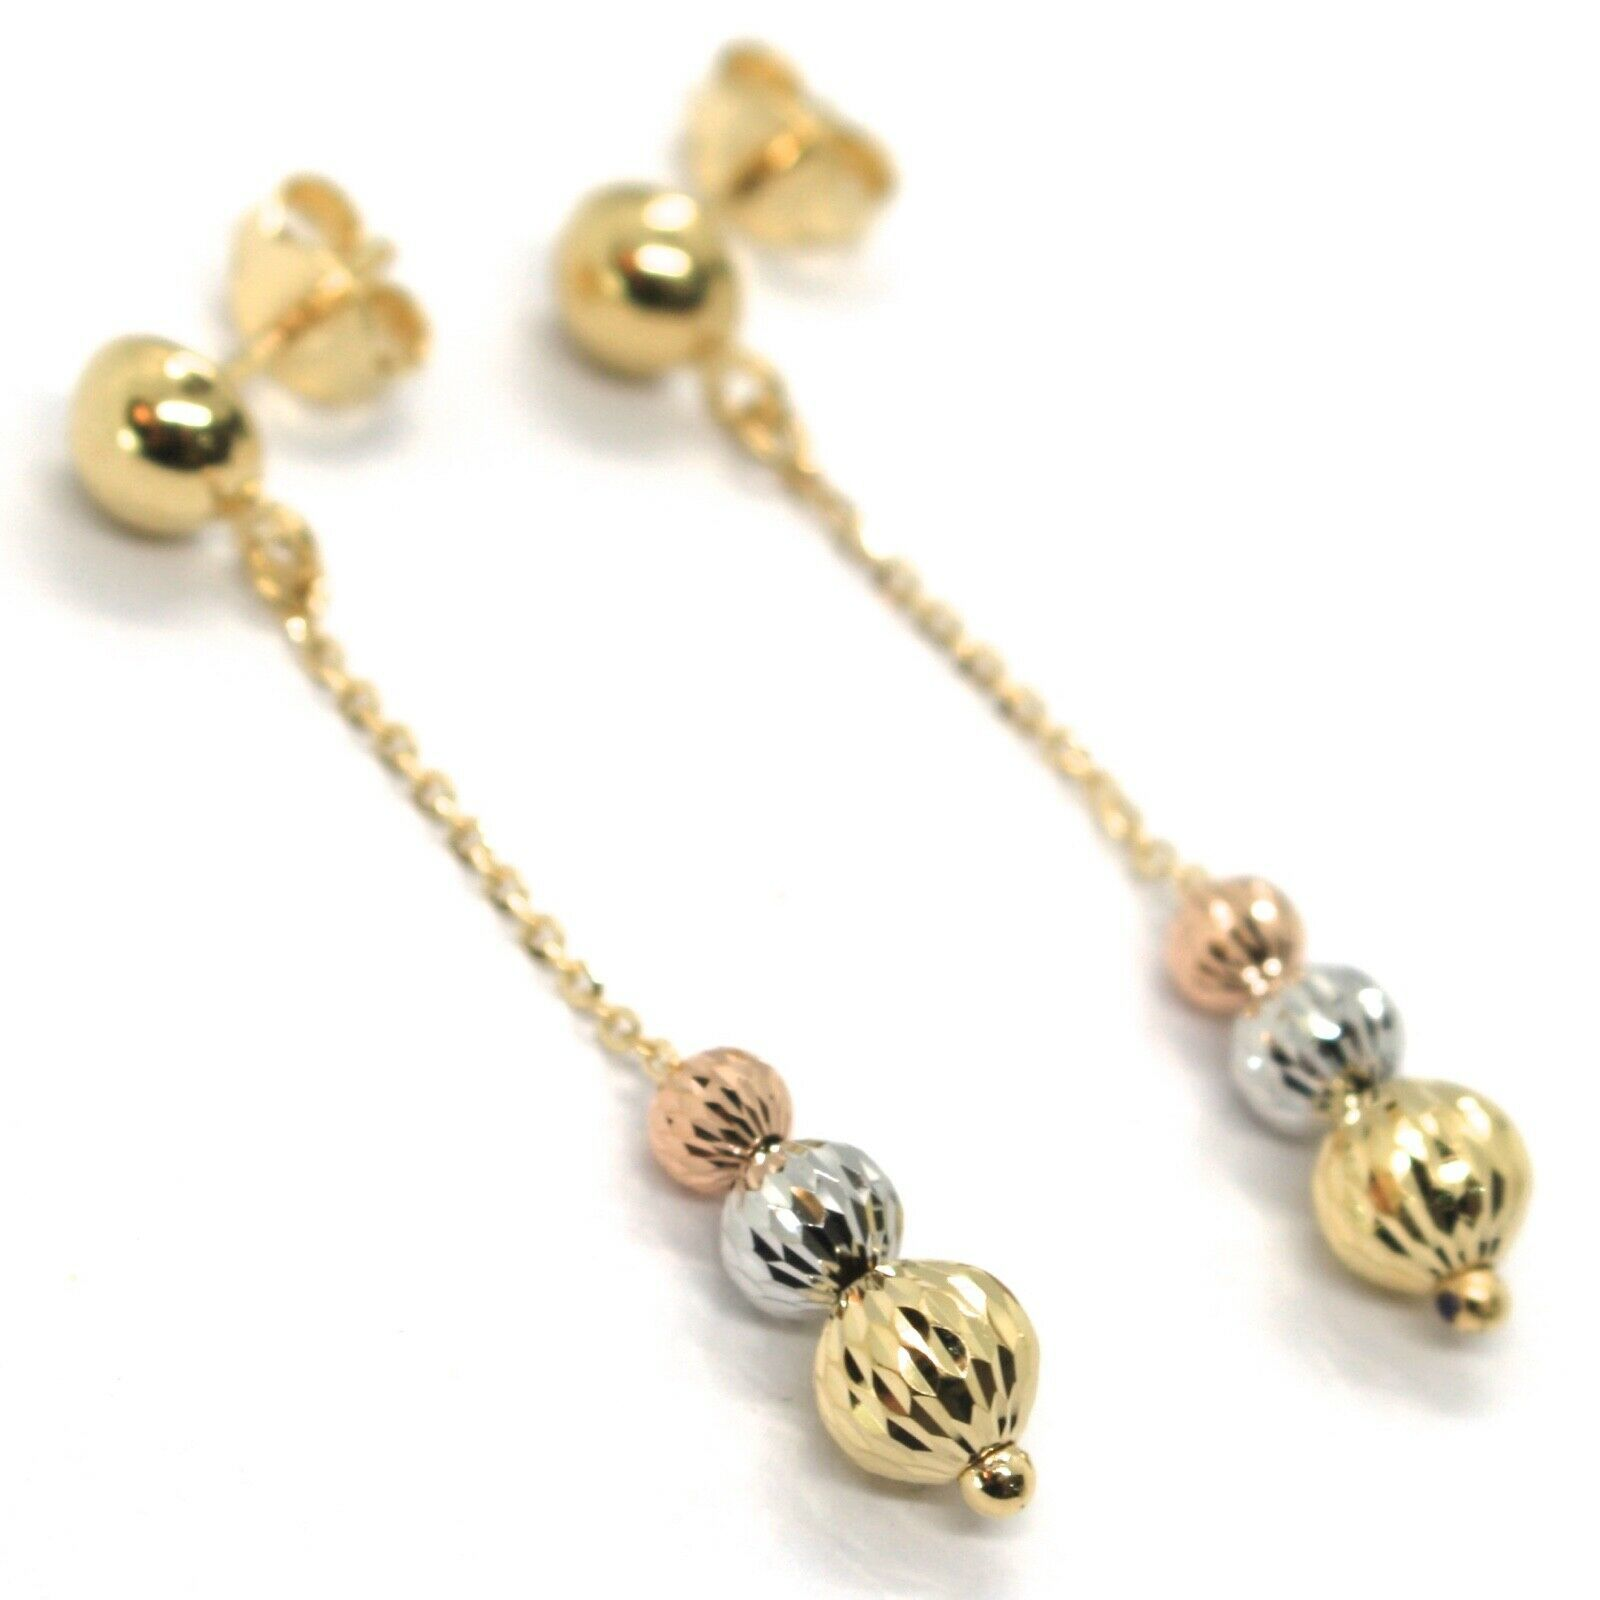 18K YELLOW ROSE & WHITE GOLD PENDANT EARRINGS THREE FACETED WORKED BALLS SPHERES